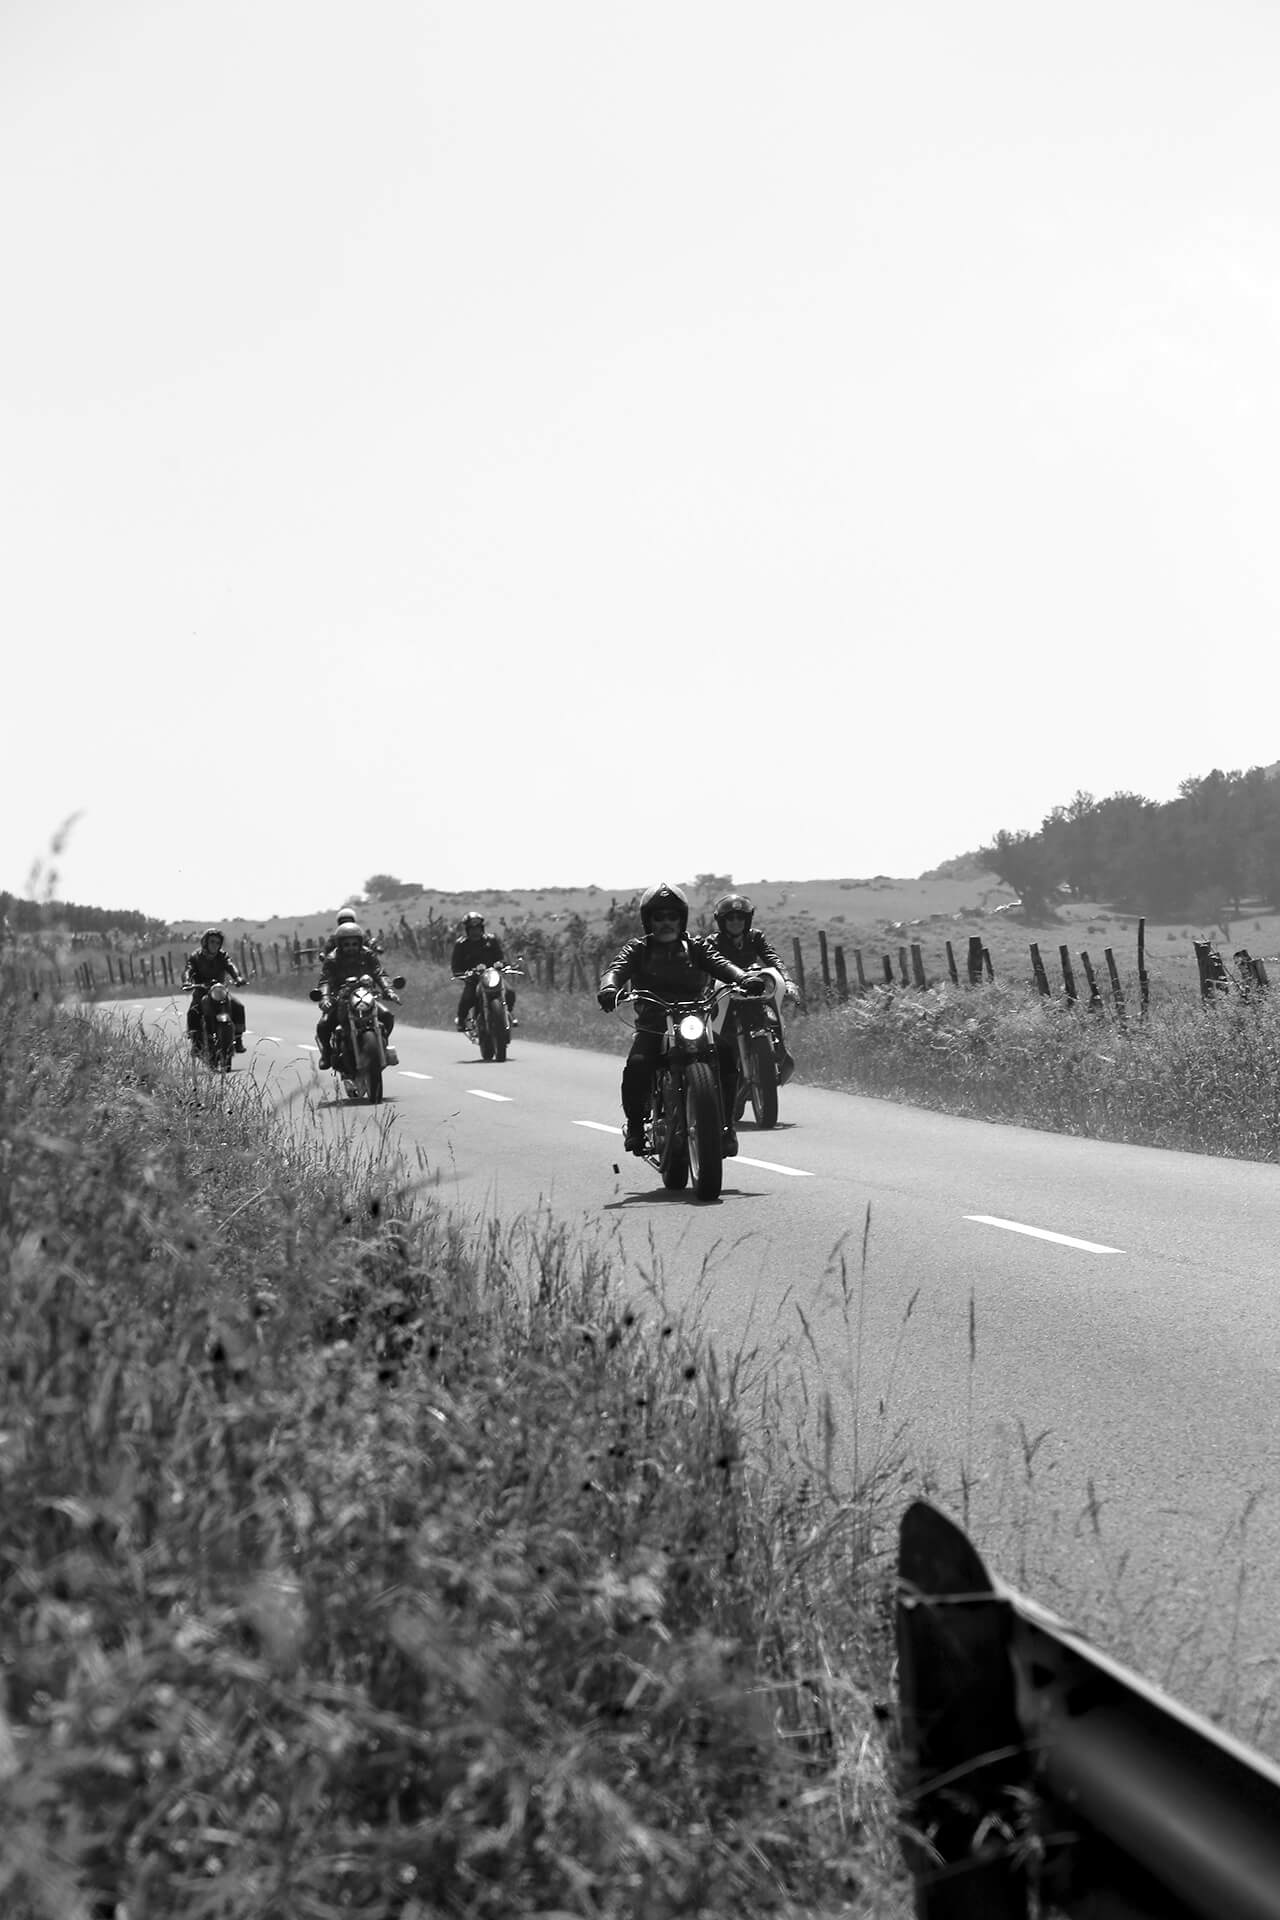 Wheels, Waves, Wheels and Waves, fashion, helmet, sparkle, biker, motorcycle, bike, france, film, photography, event, WeAreShuffle, black and white